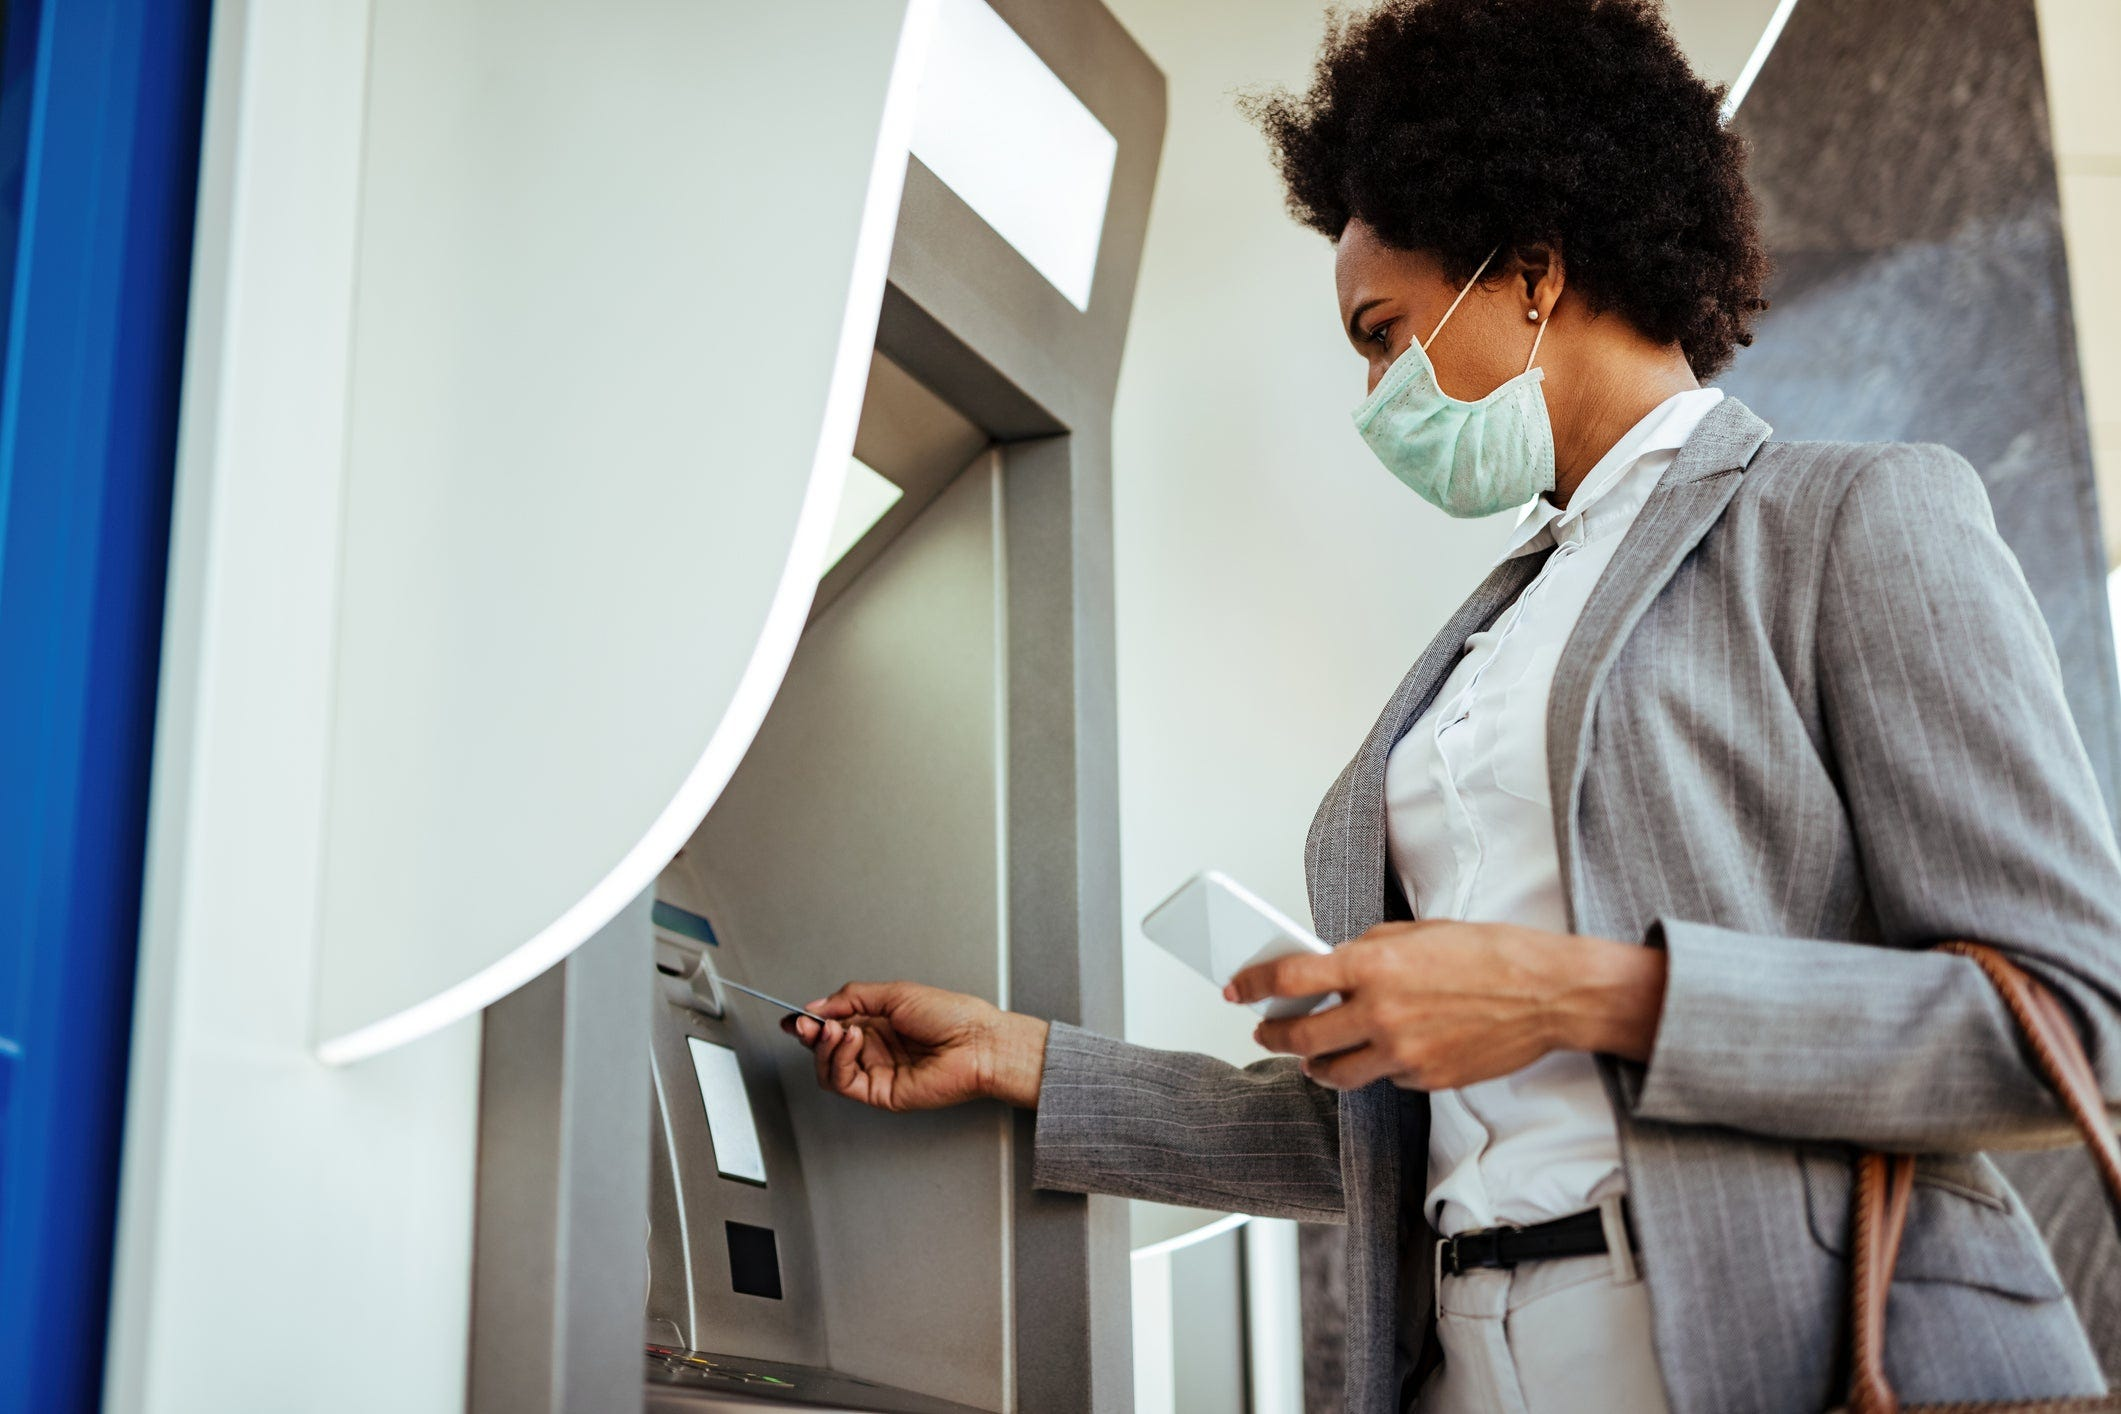 Scammers avoid ATMs, which are equipped with cameras, in favor of online banking and new banking apps.